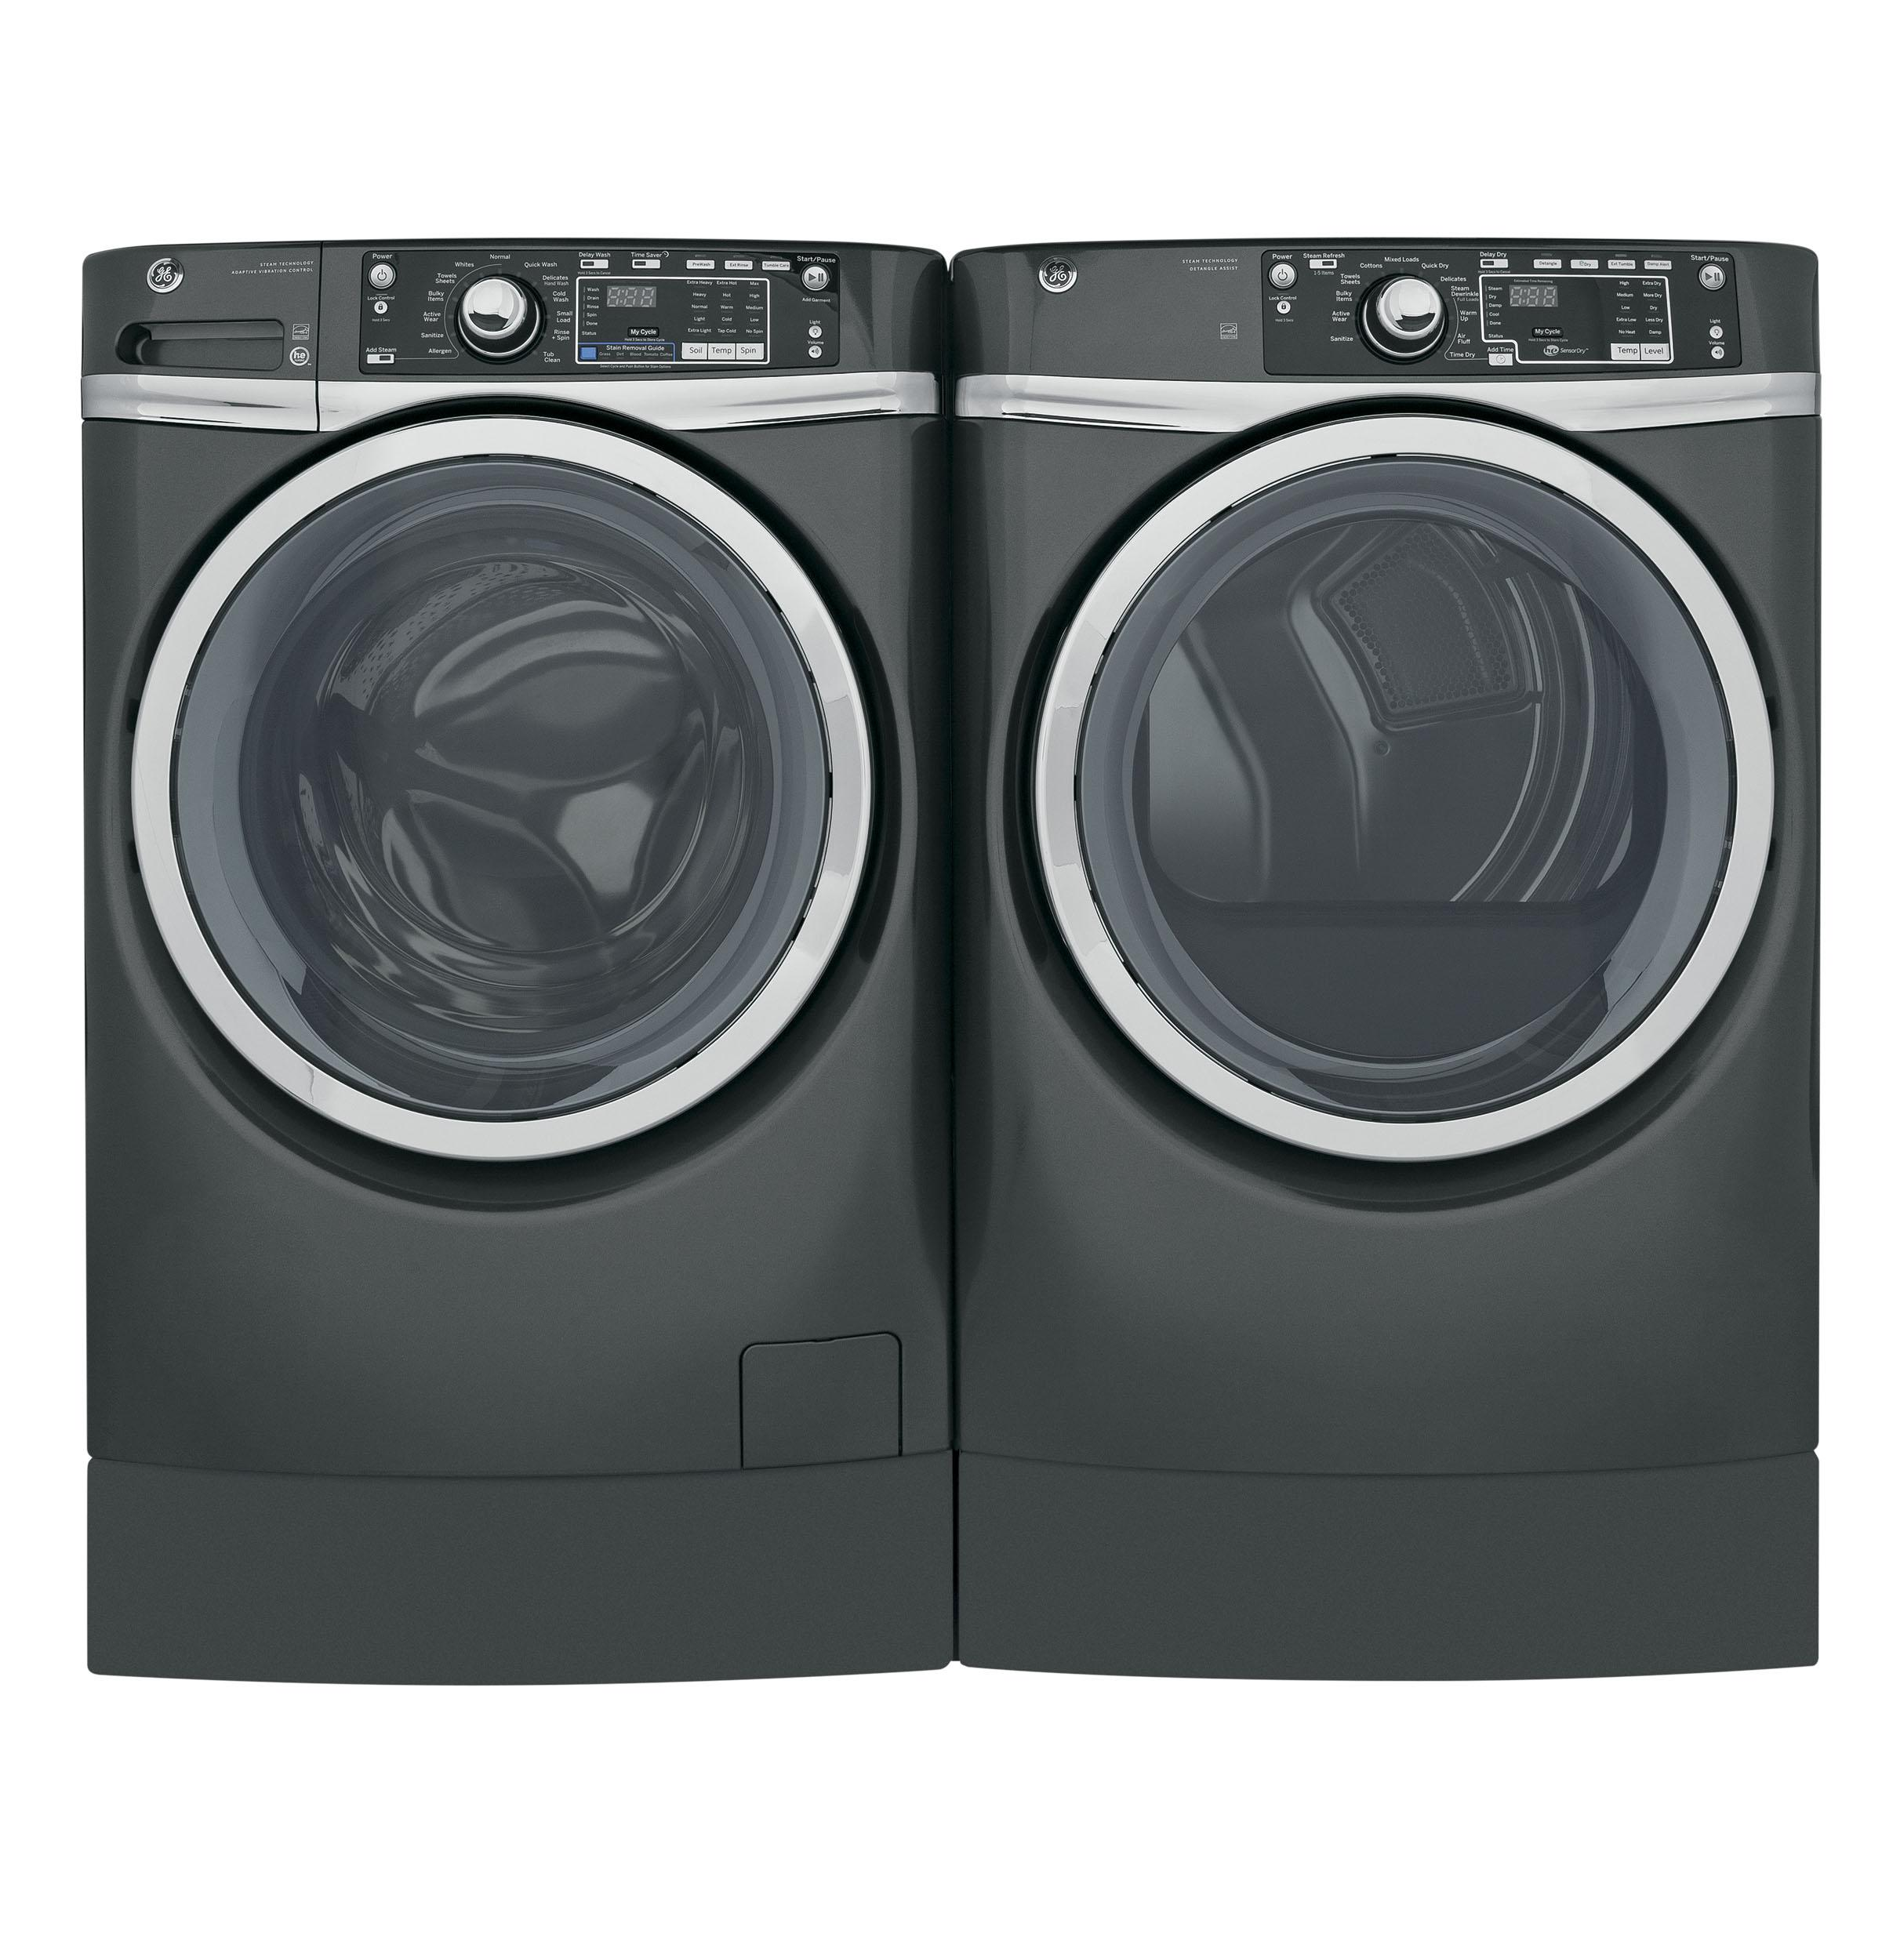 GE(R) 8.3 cu. ft. capacity RightHeight(TM) Design Front Load electric ENERGY STAR(R) dryer with steam